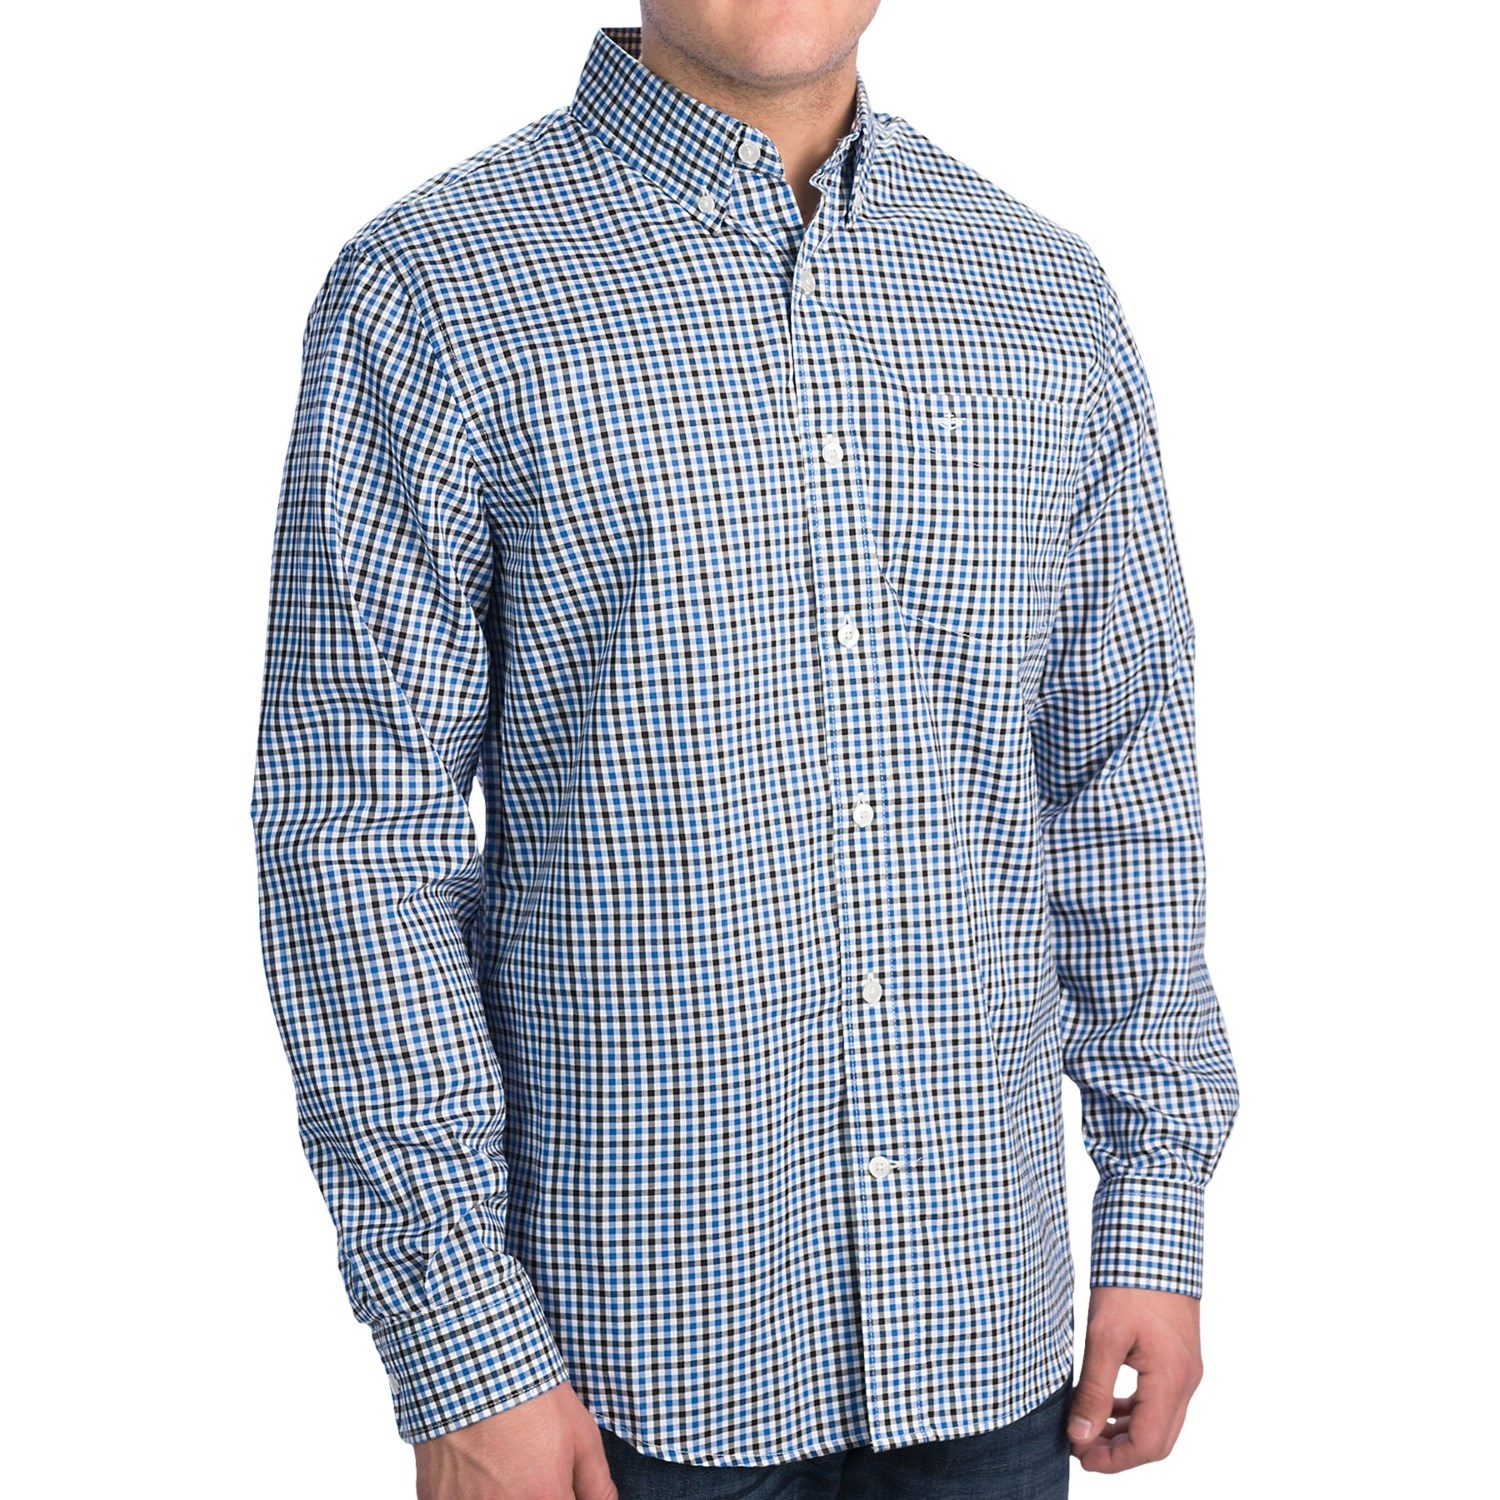 Dockers no wrinkle check shirt long sleeve for men for Dockers wrinkle free shirts